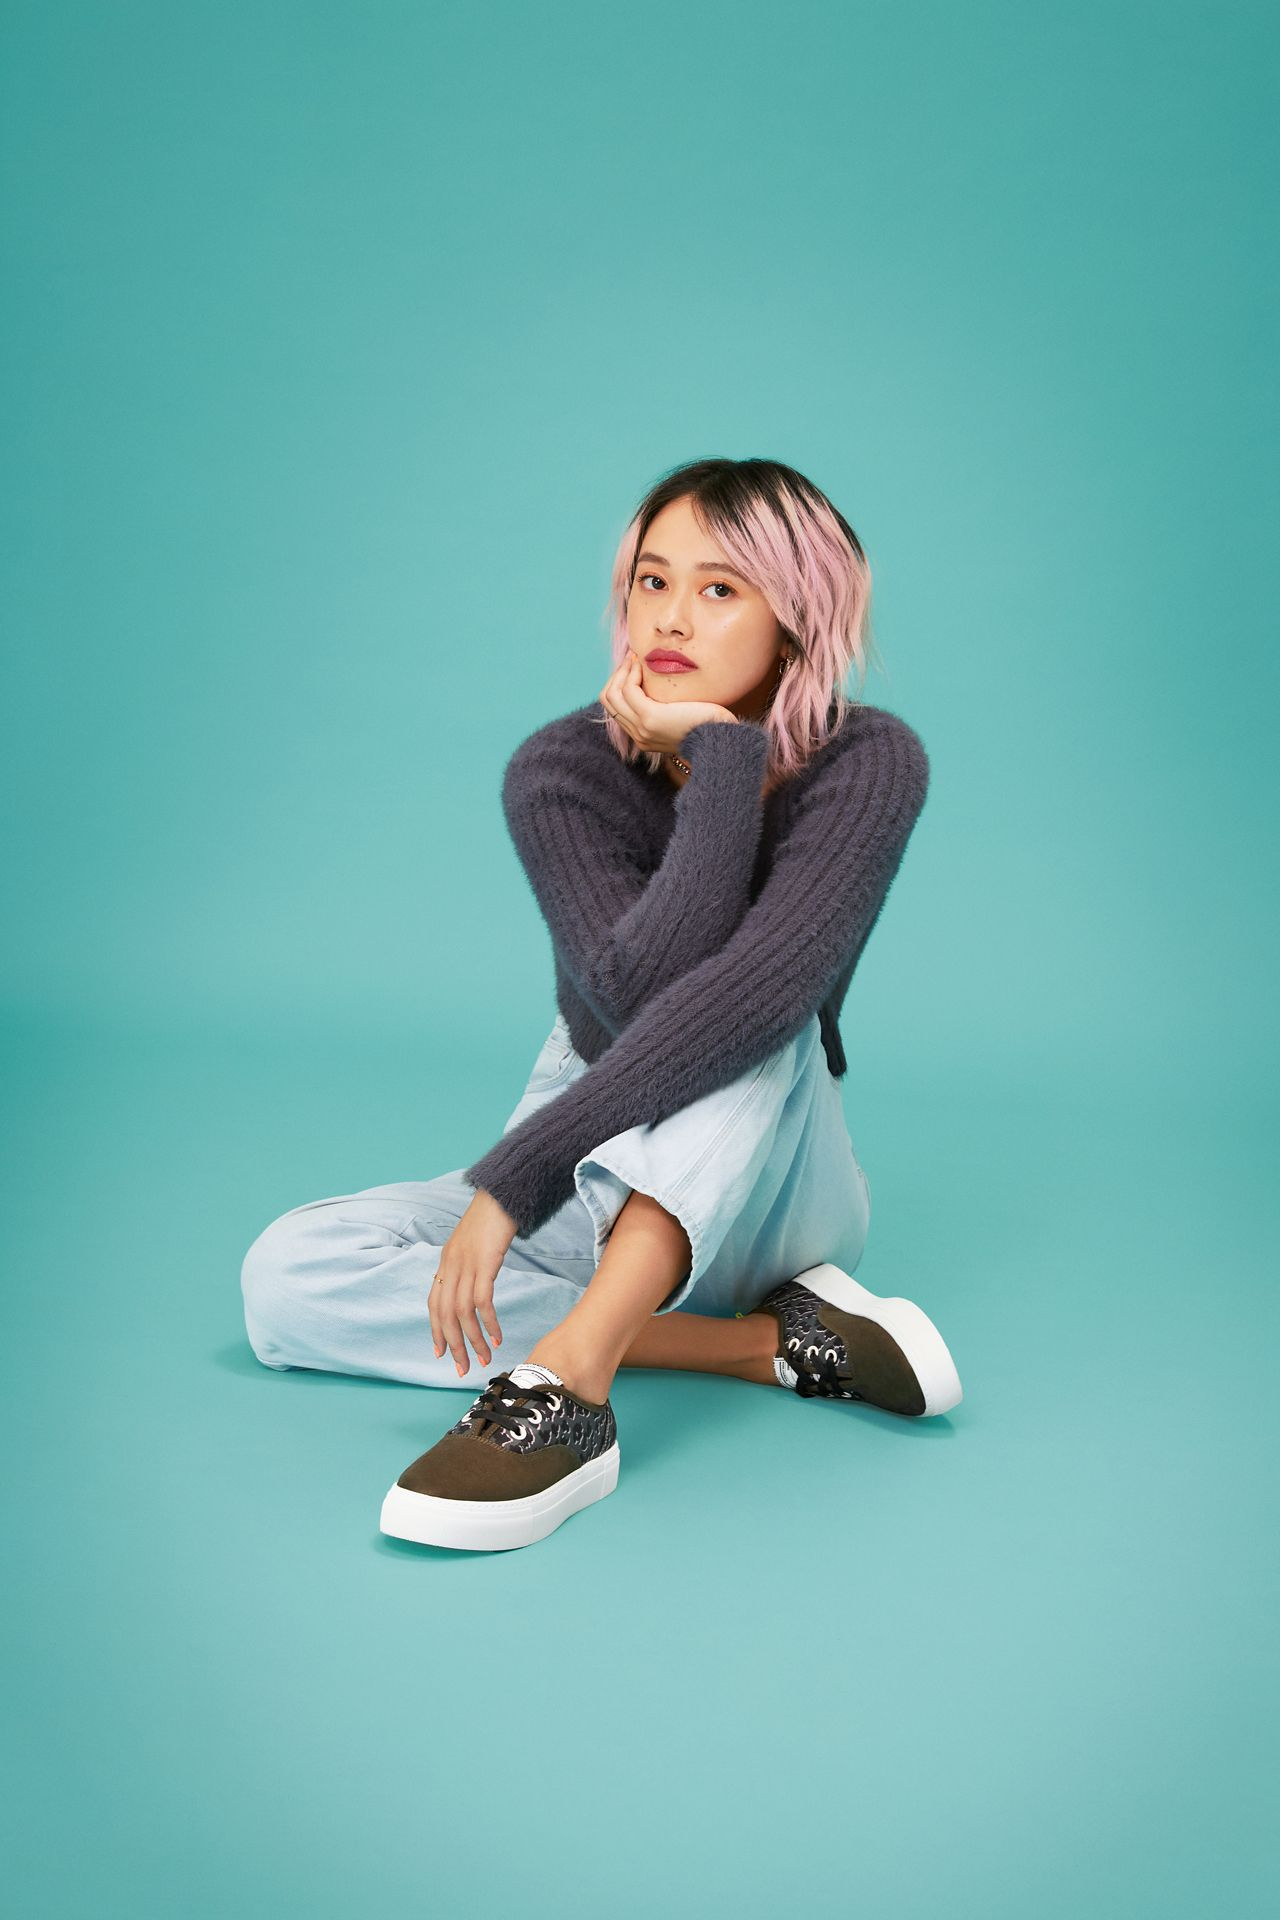 Young woman with pink wavy hair wearing pale blue jeans, Call It Spring sneakers and sitting on a blue turquoise background.